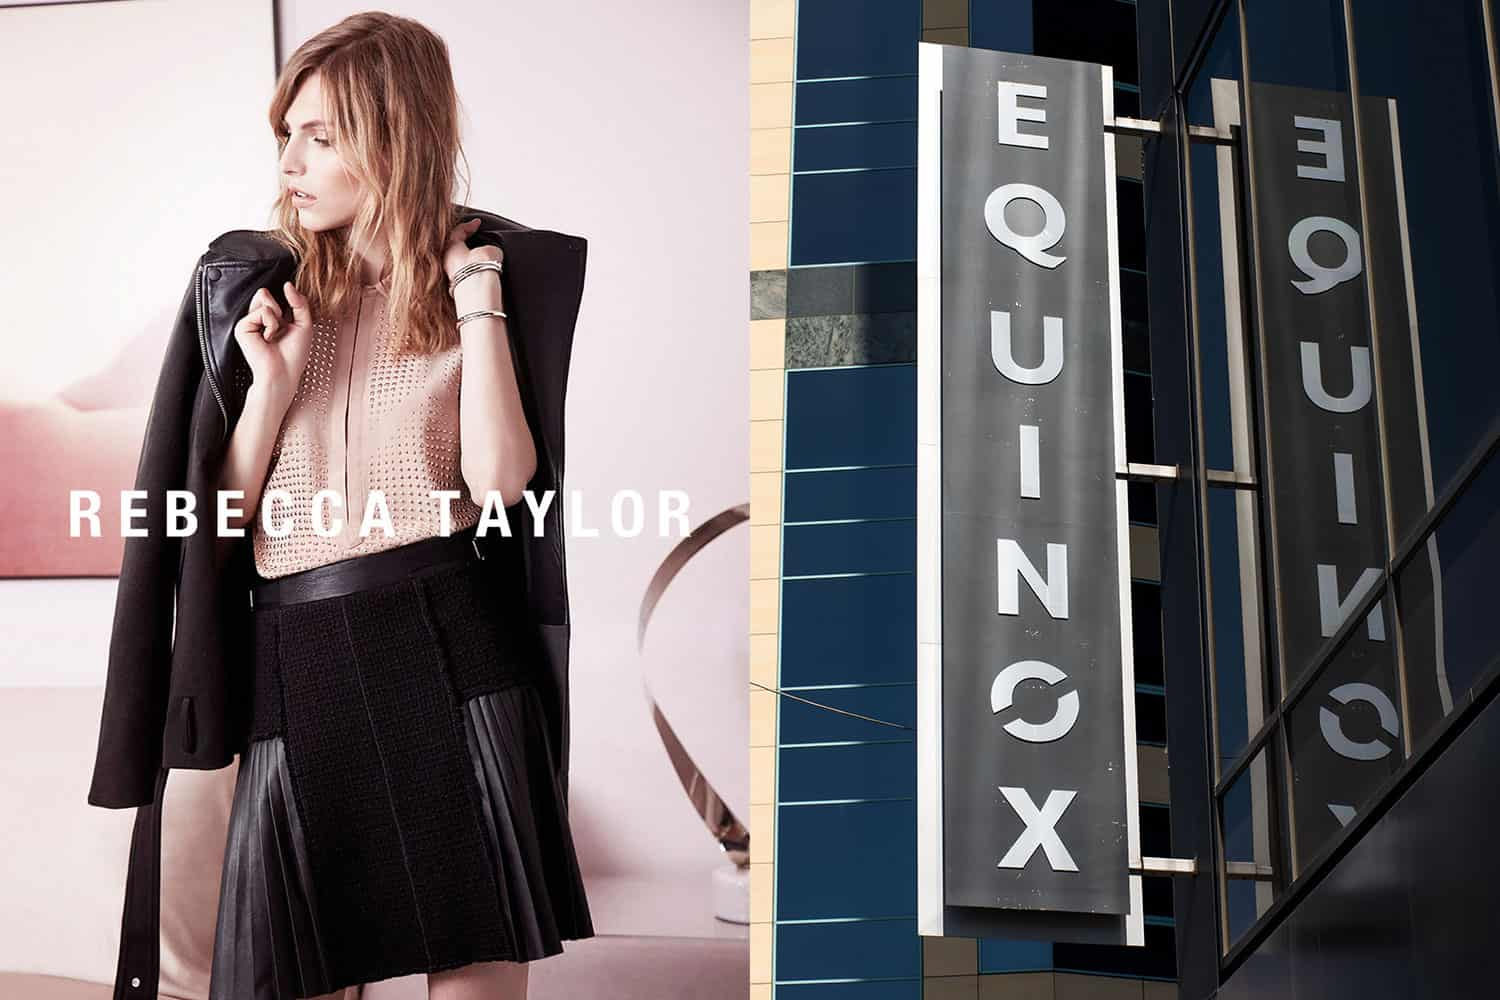 Equinox, SoulCycle hit with protests, nationwide membership cancellations over Trump fundraiser